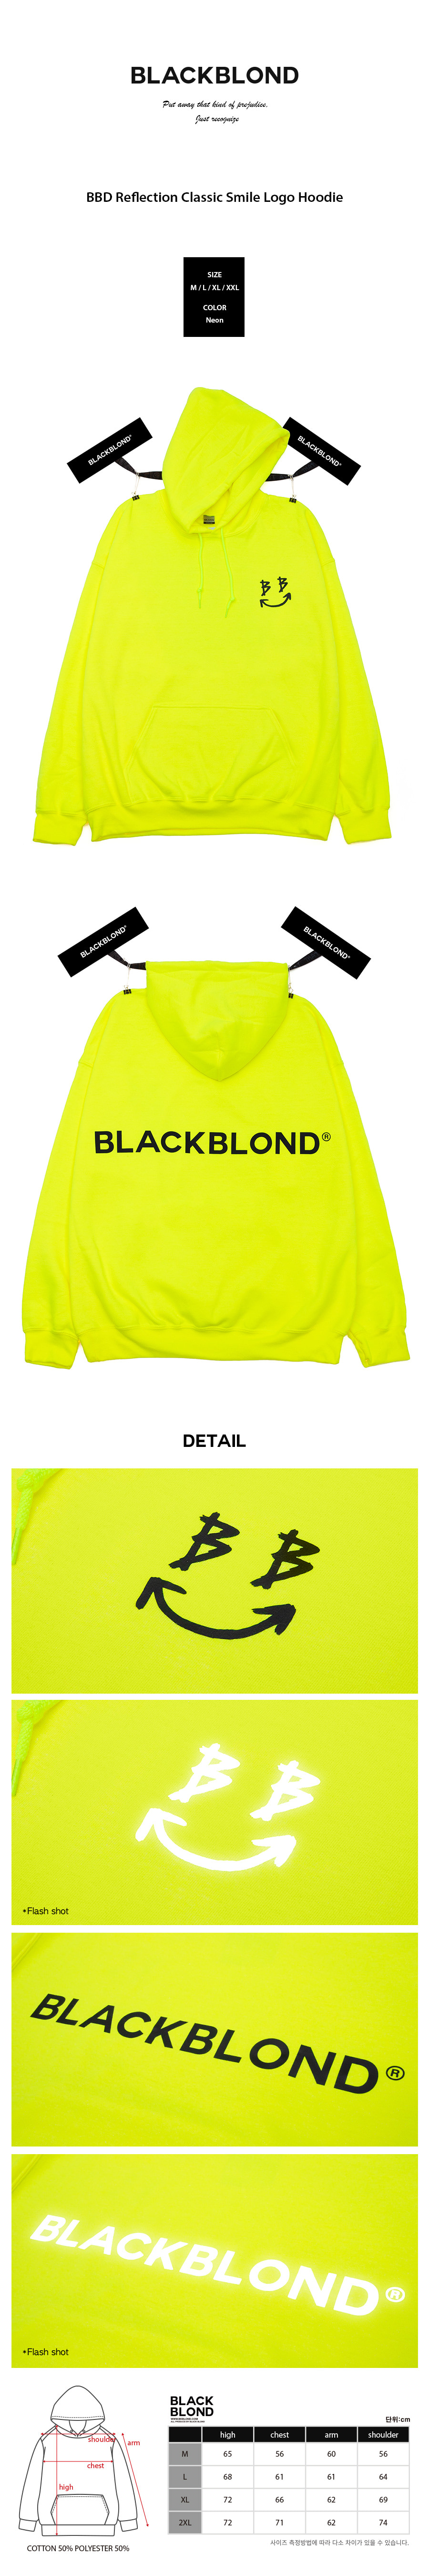 BLACKBLOND - BBD Reflection Classic Smile Logo Hoodie (Neon)